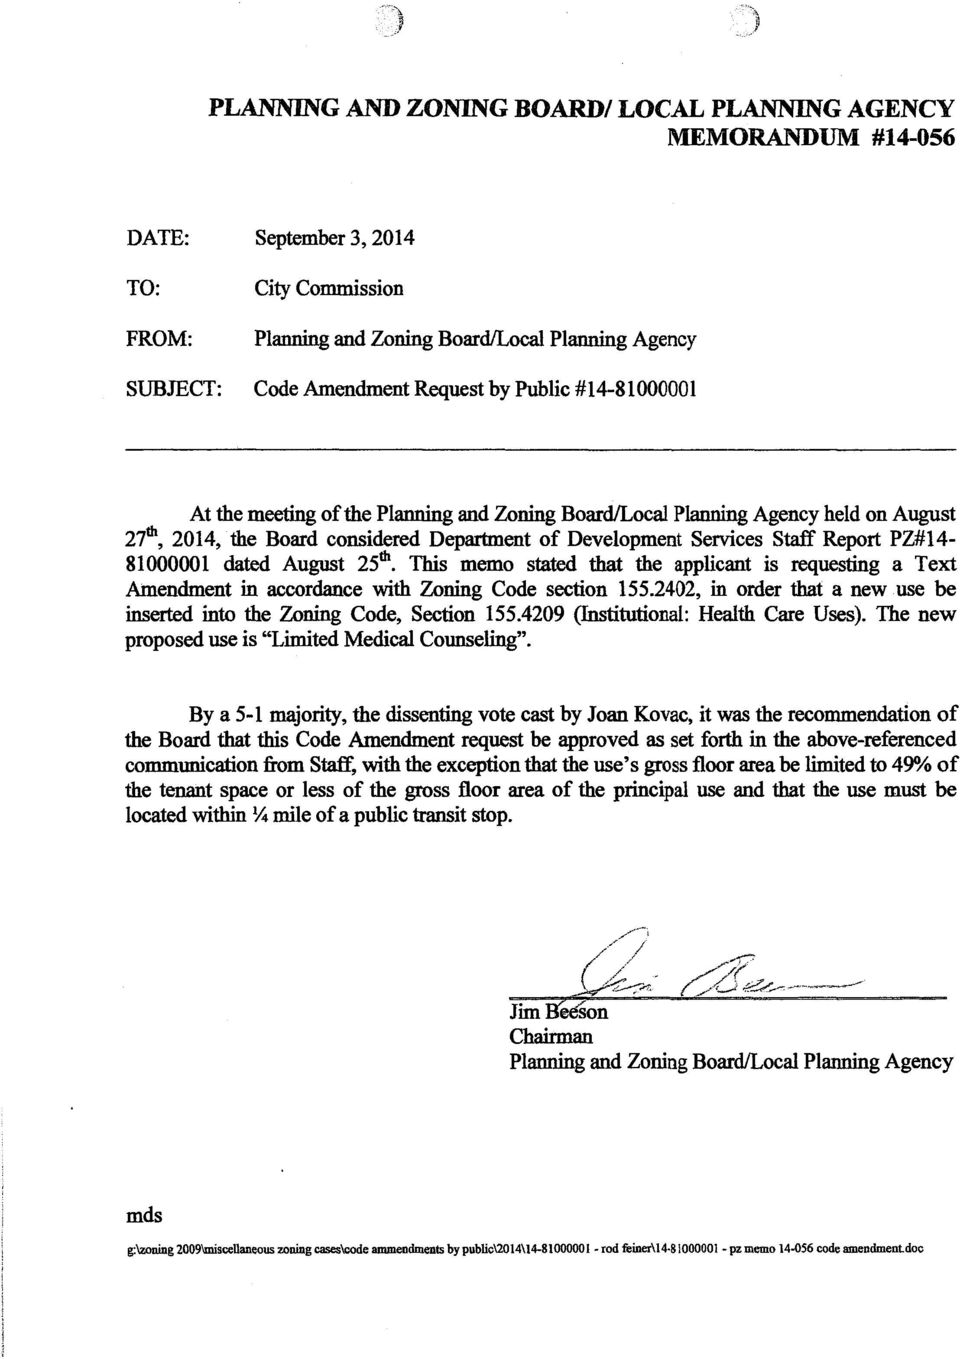 PZ#l4-81000001 dated August 25th. This memo stated that the applicant is requesting a Text Amendment in accordance with Zoning Code section 155.